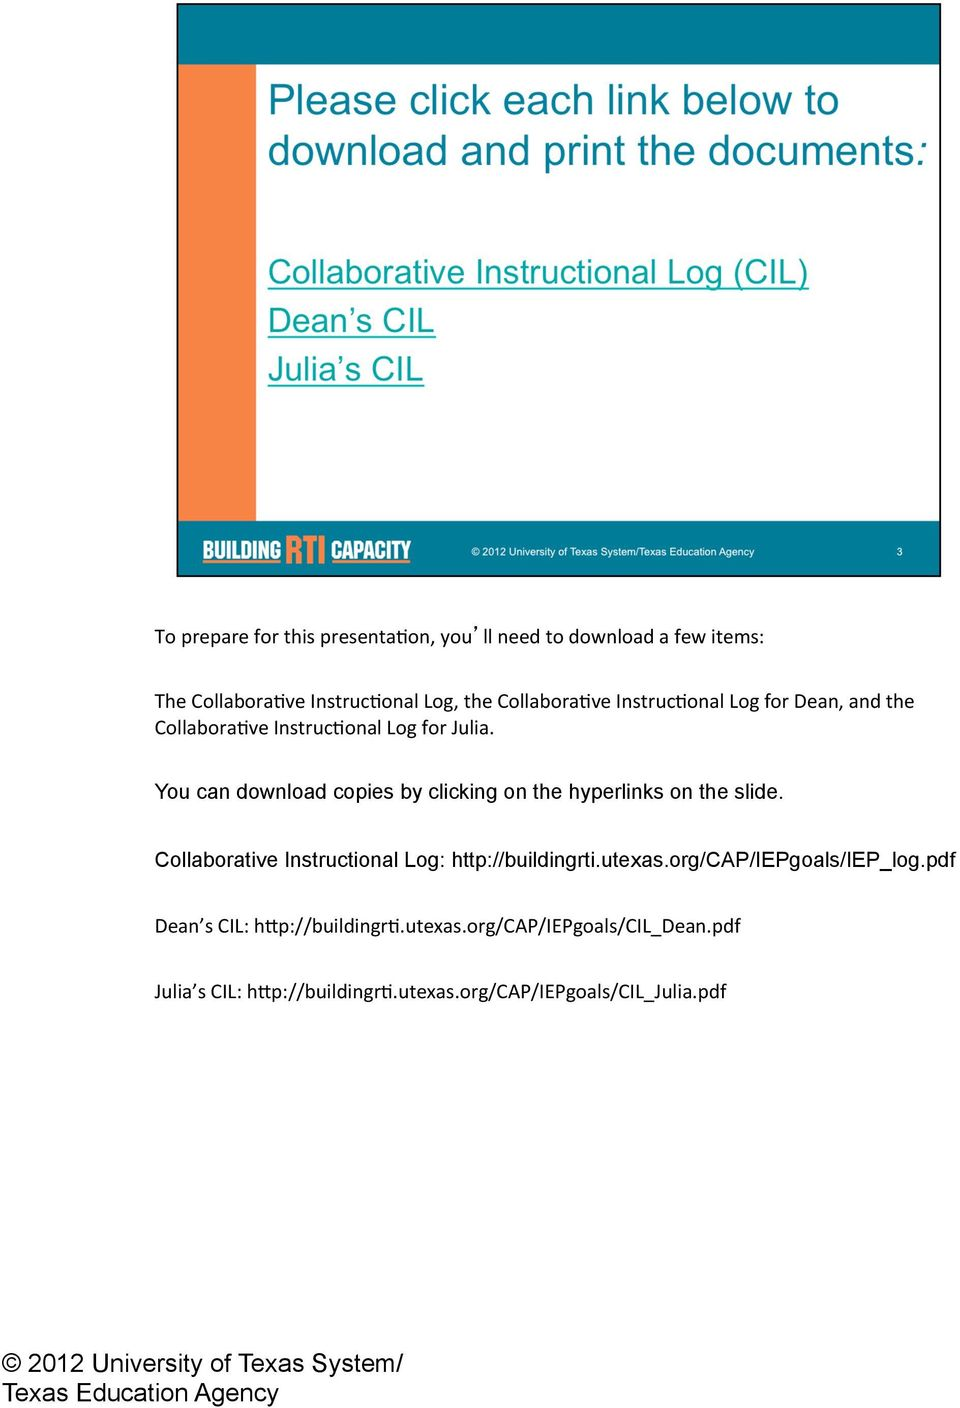 You can download copies by clicking on the hyperlinks on the slide. Collaborative Instructional Log: http://buildingrti.